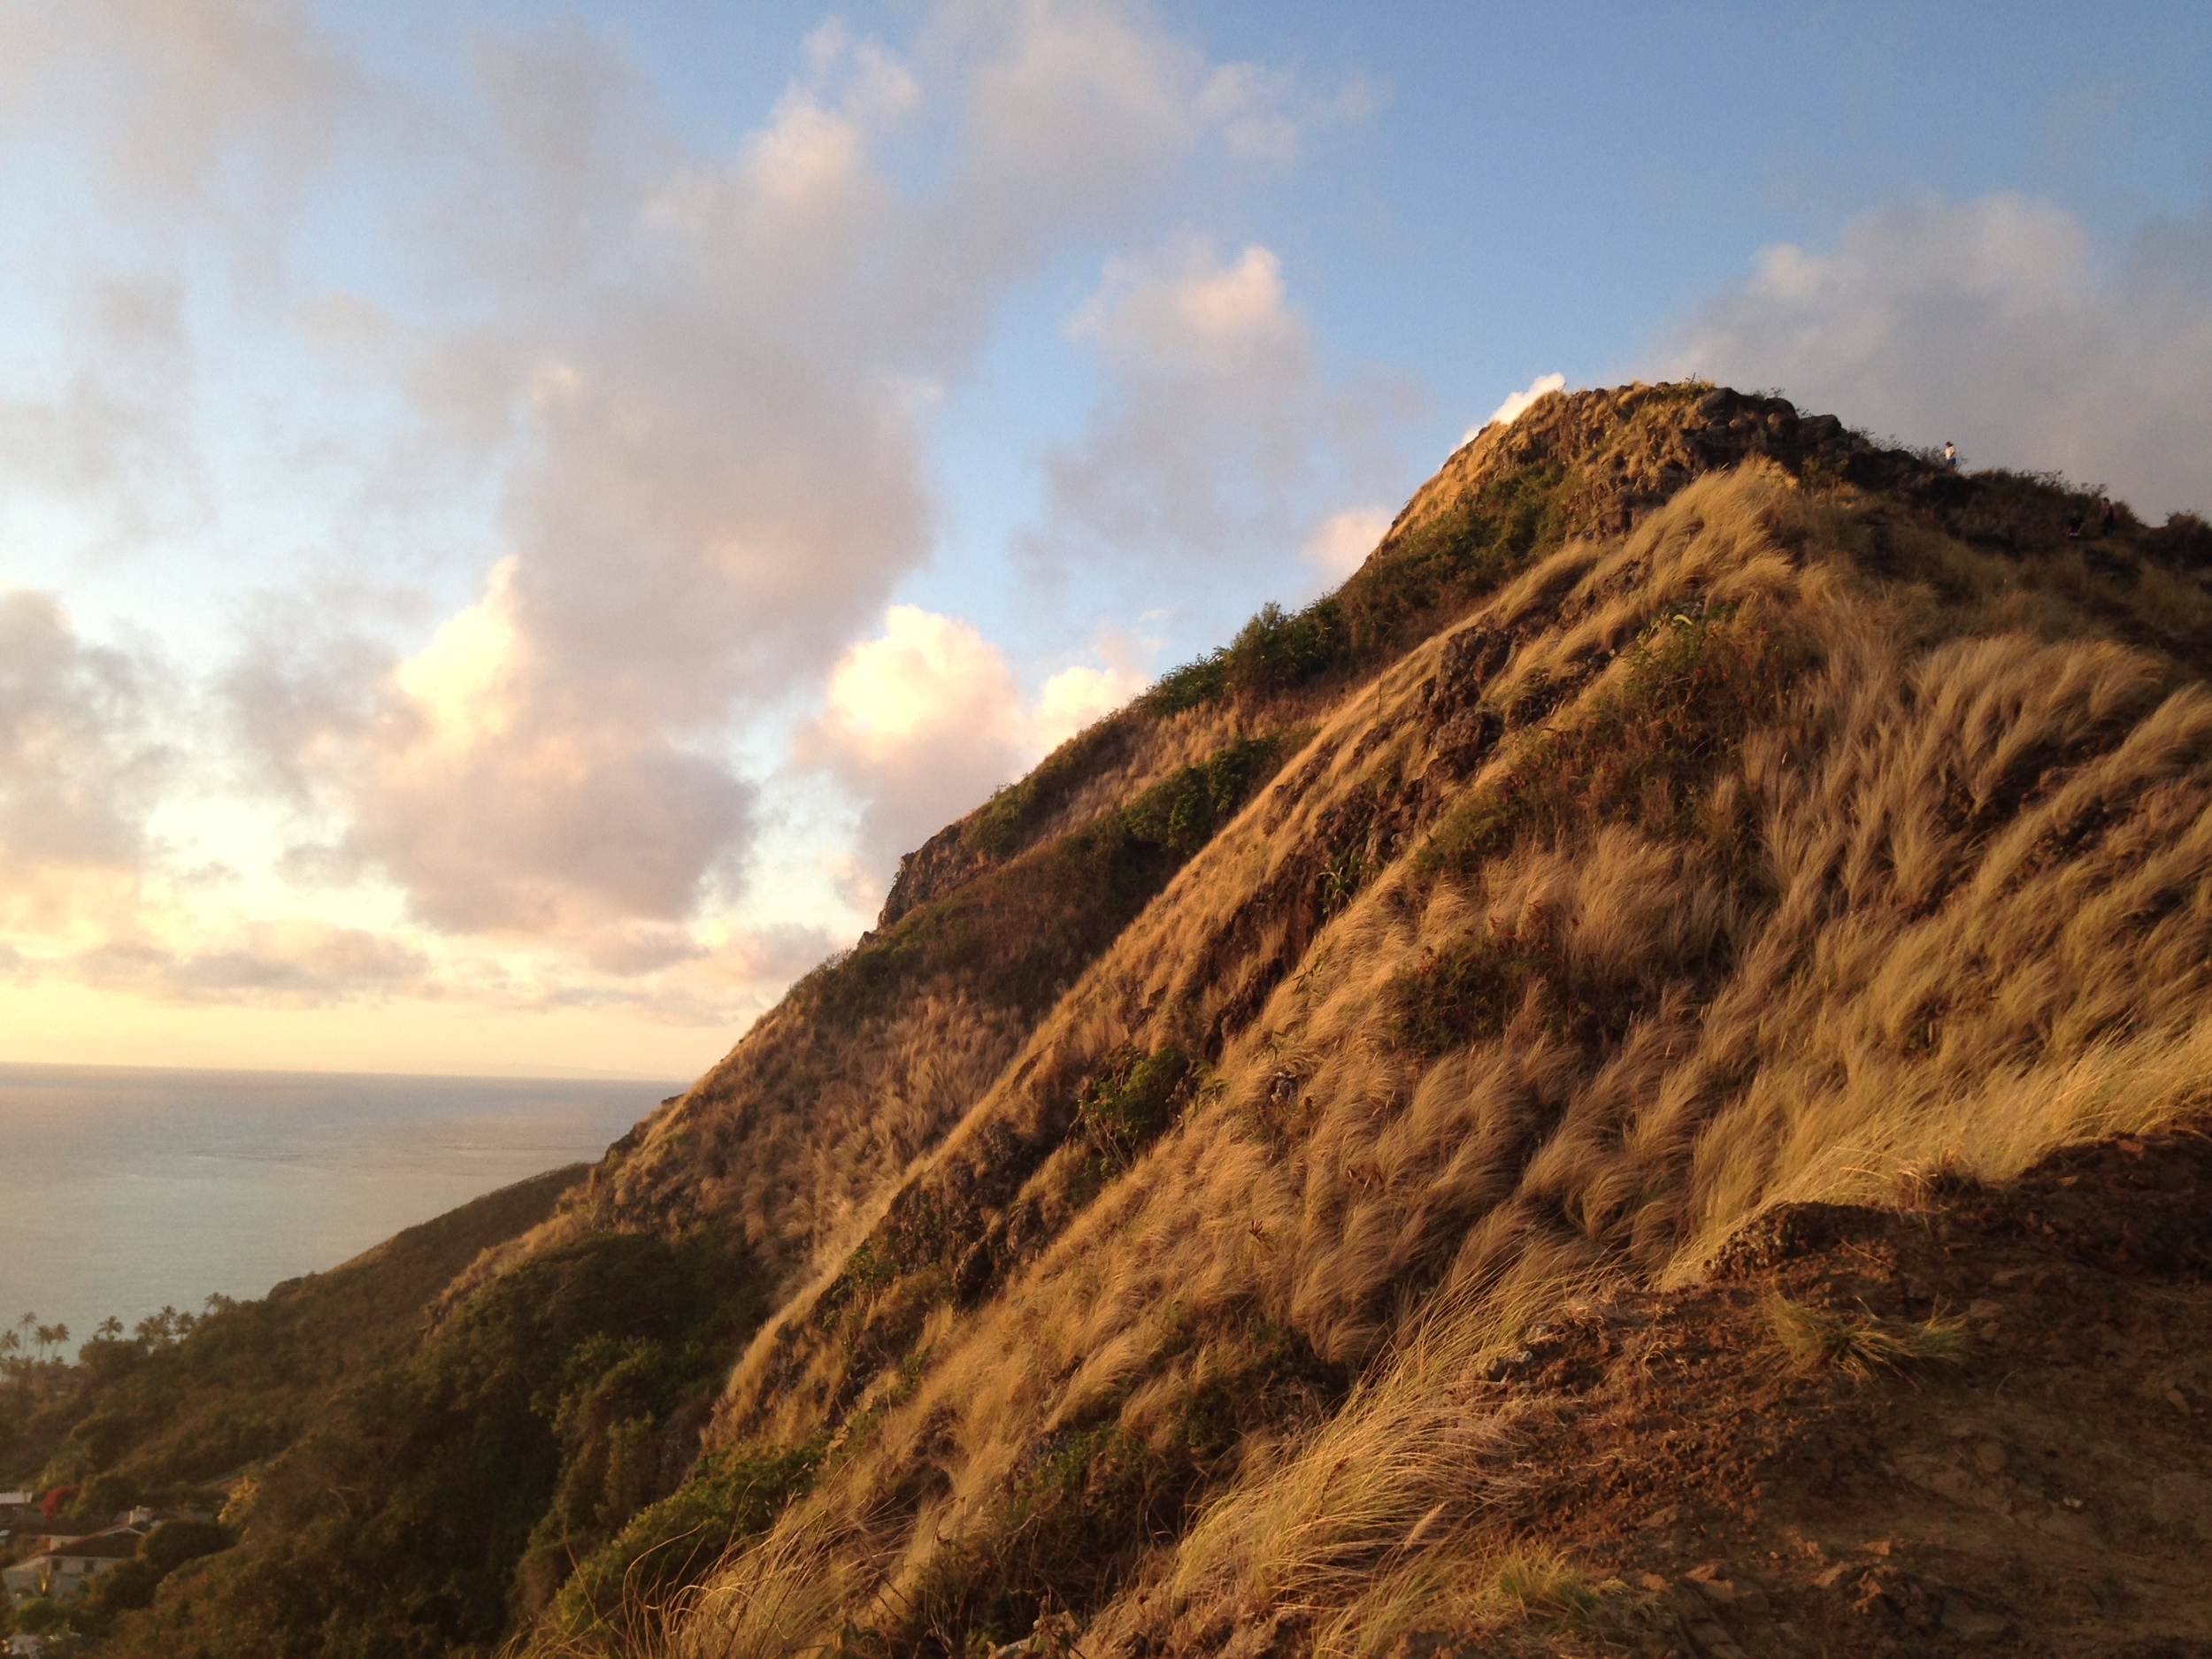 Lanikai pillboxes hike at sunrise. The pillboxes are remnants from WWII.